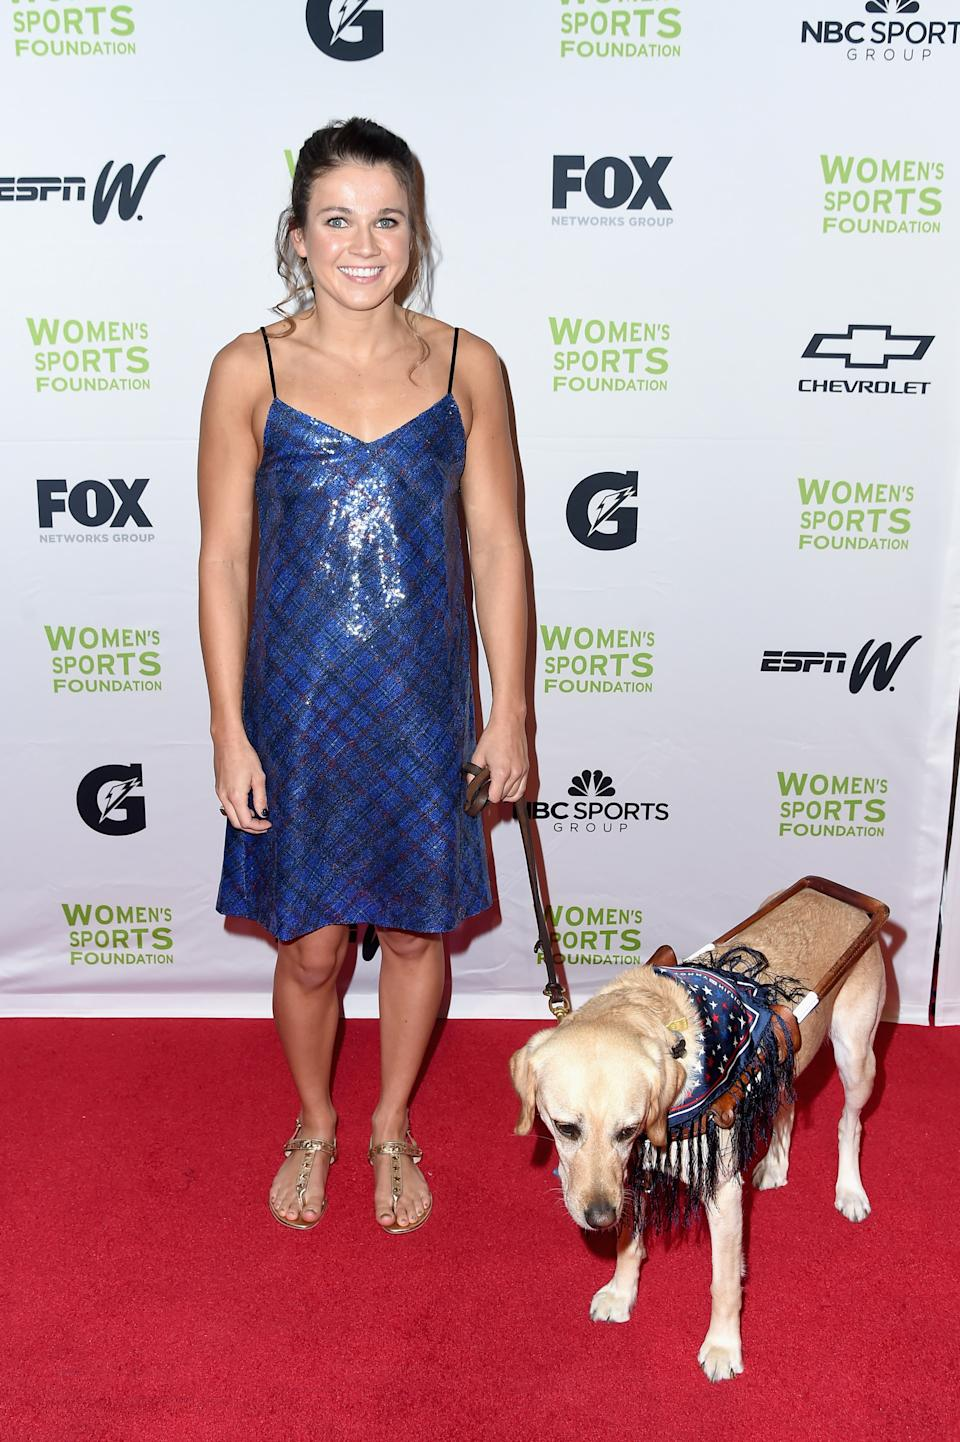 Becca Meyers 2017 in New York City. (Bild: Nicholas Hunt/Getty Images for Women's Sports Foundation)